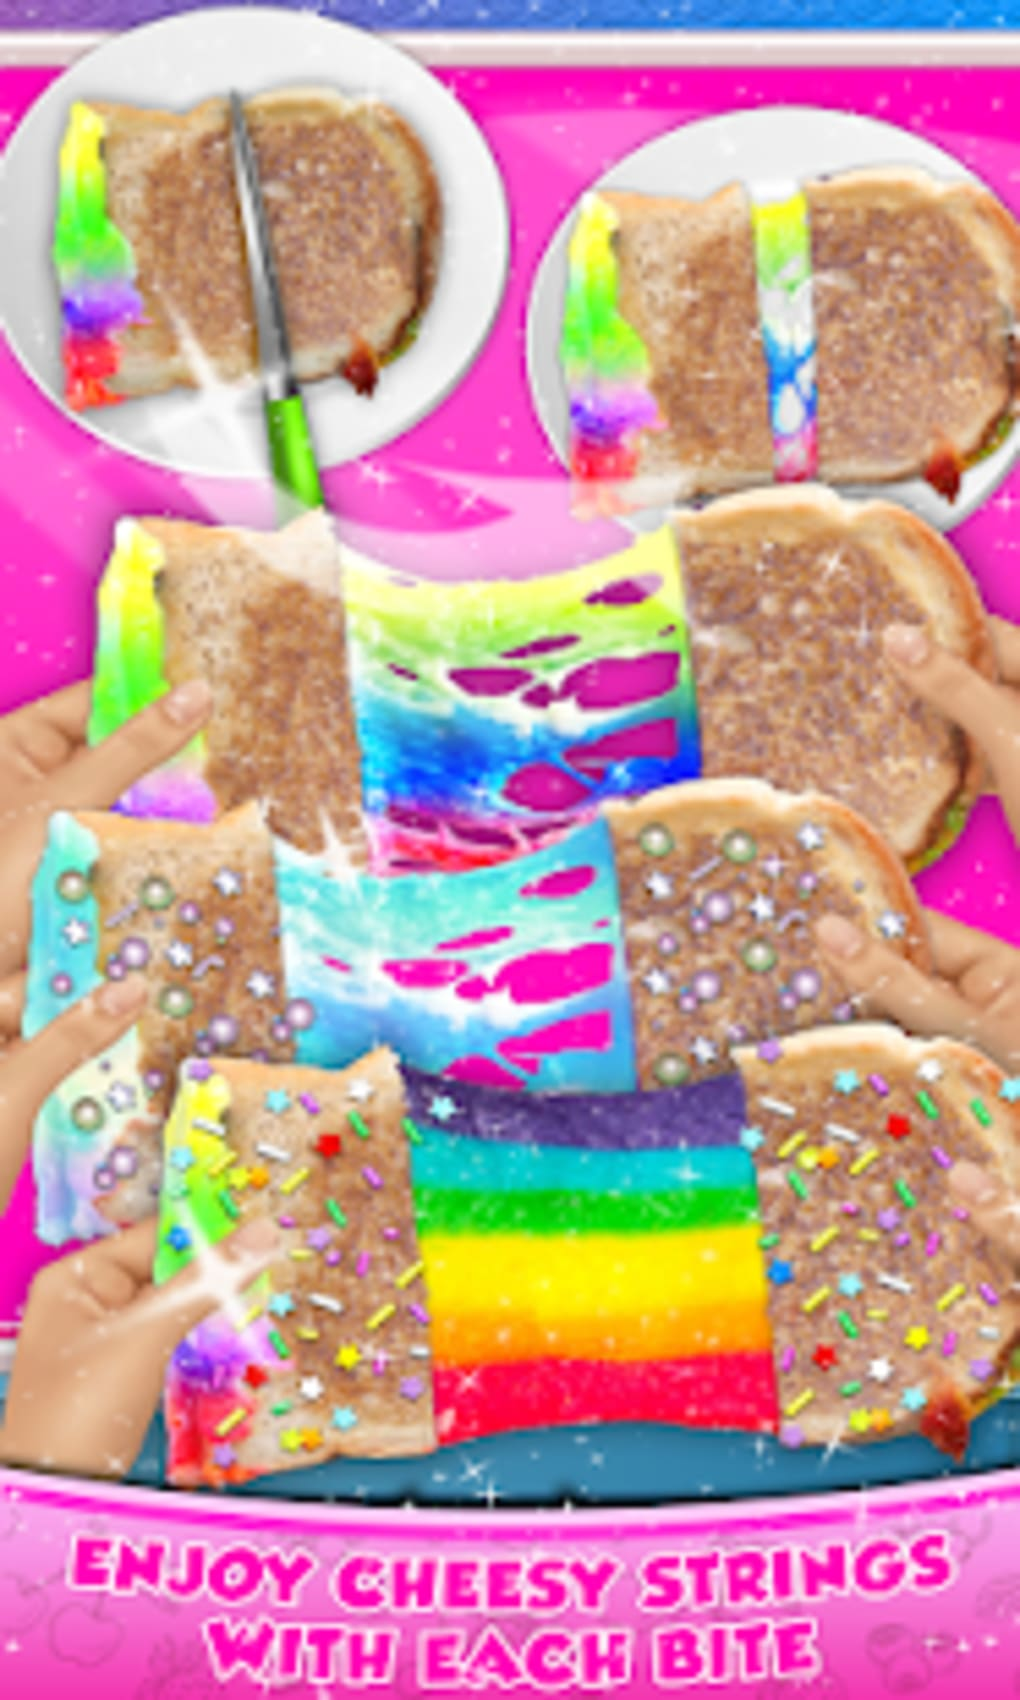 Rainbow Grilled Cheese Sandwich Maker DIY cooking